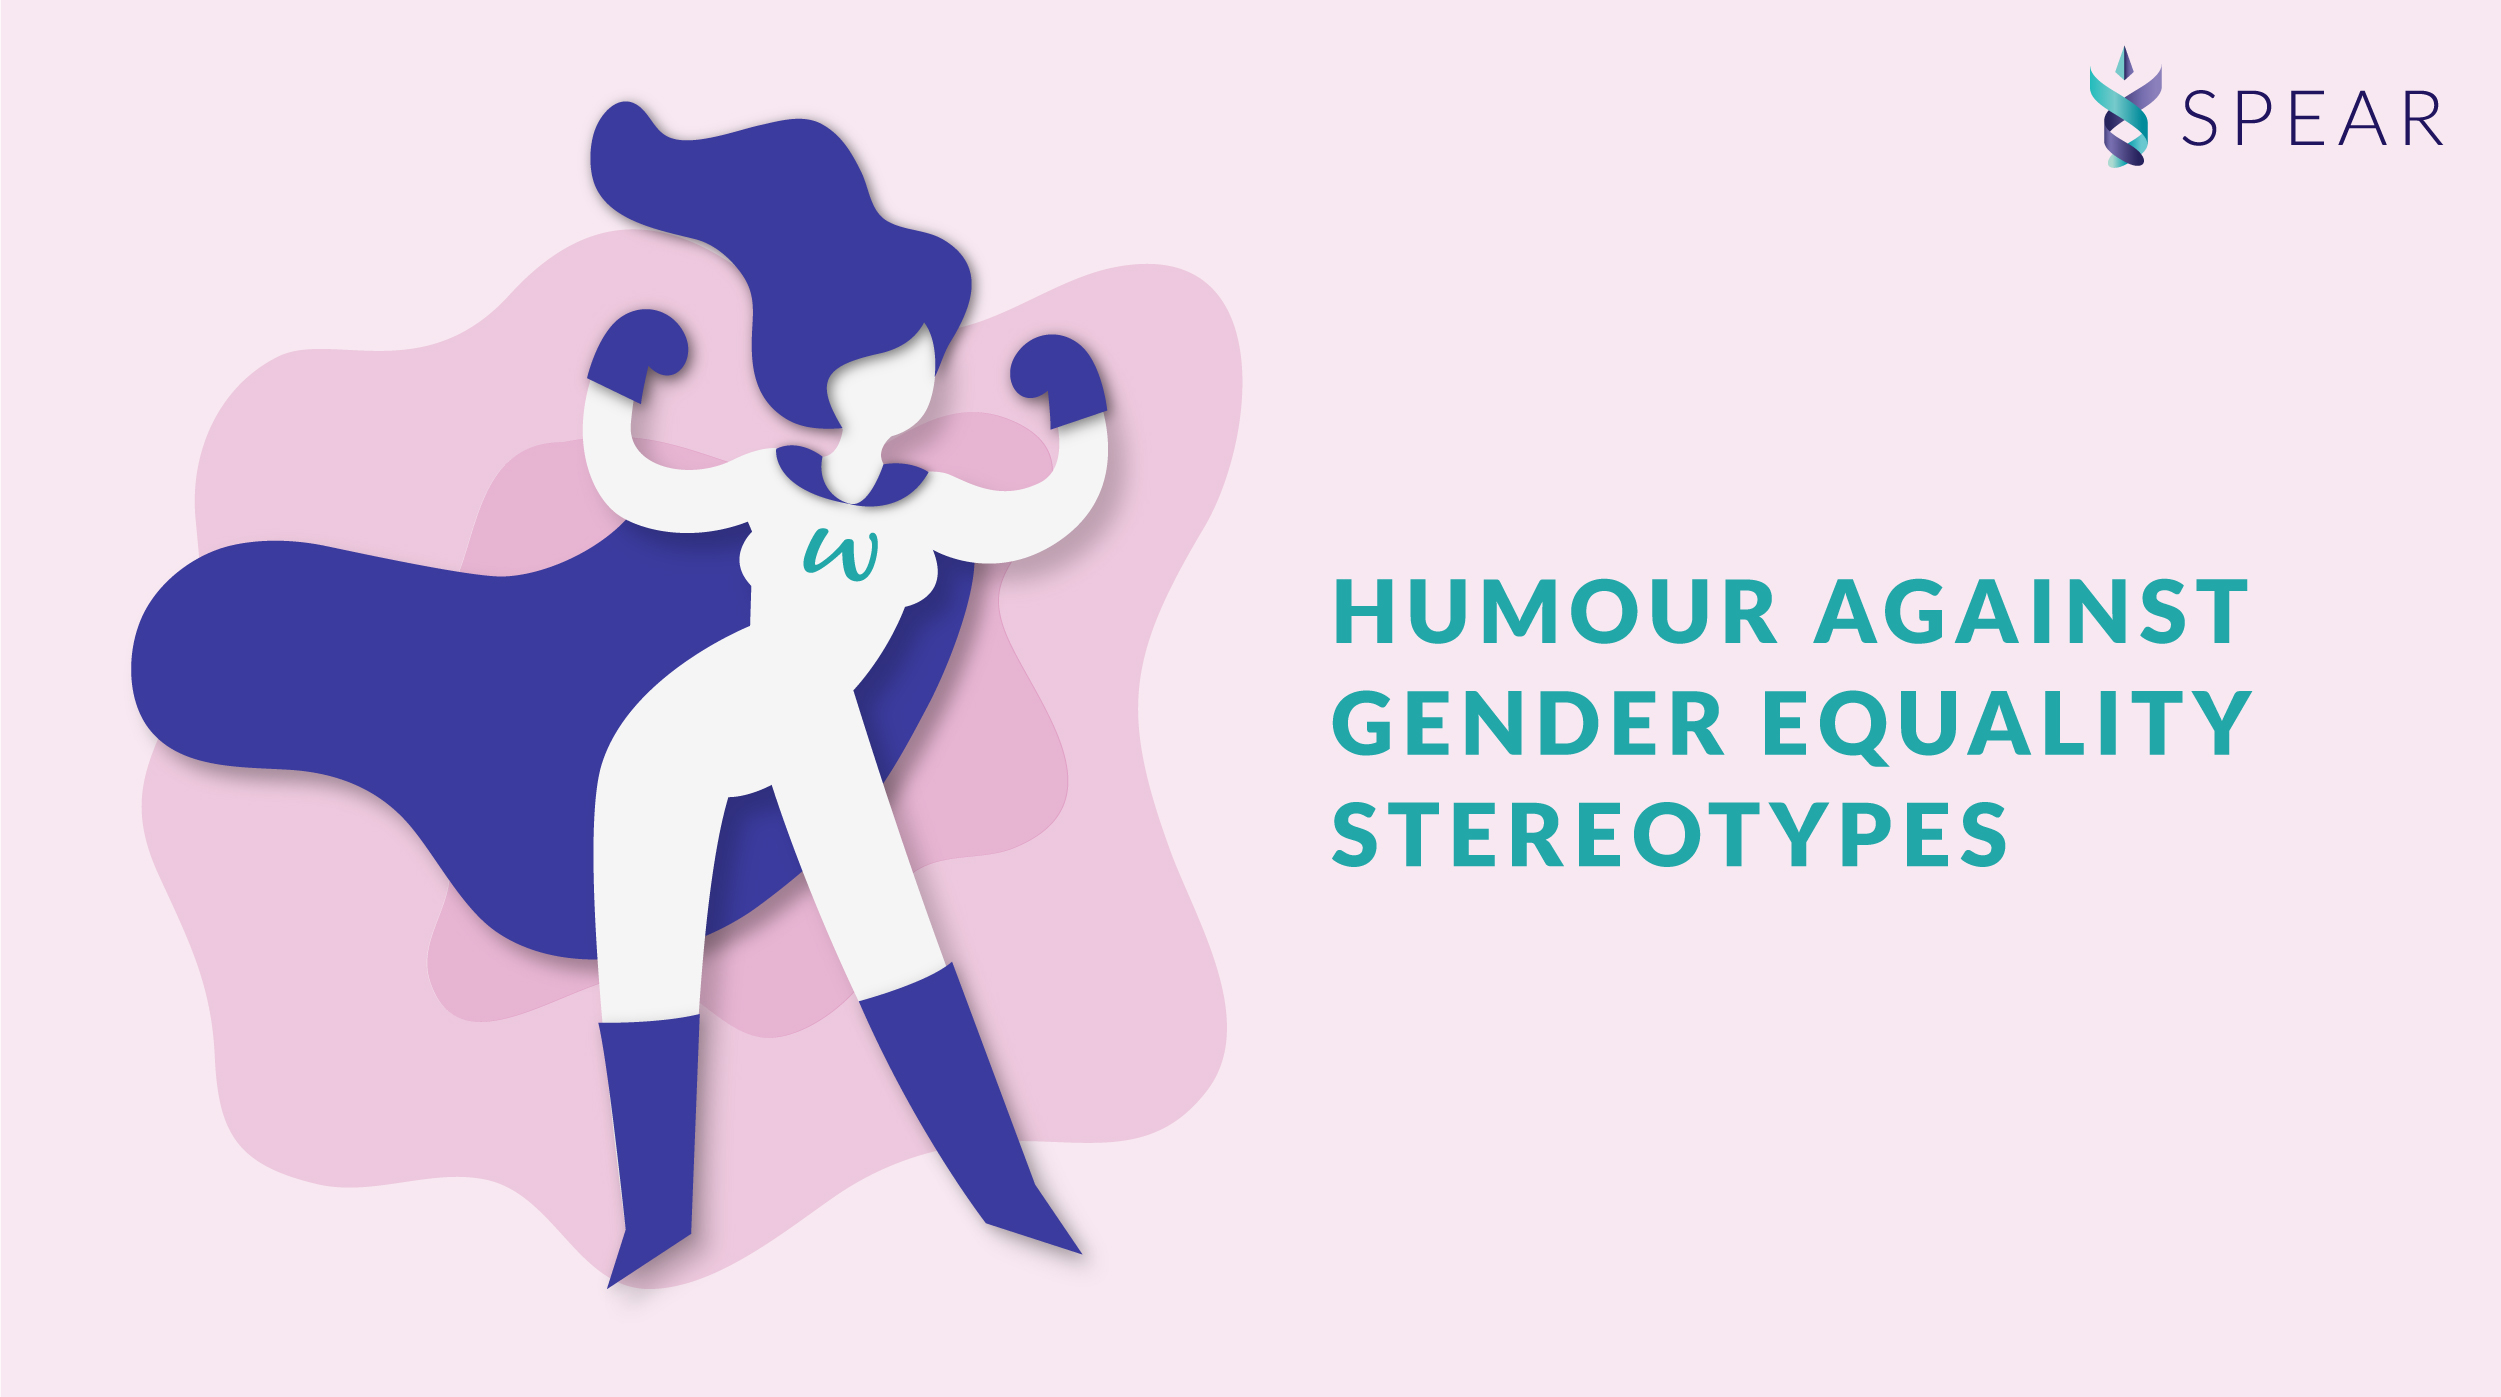 Humour against gender equality stereotypes